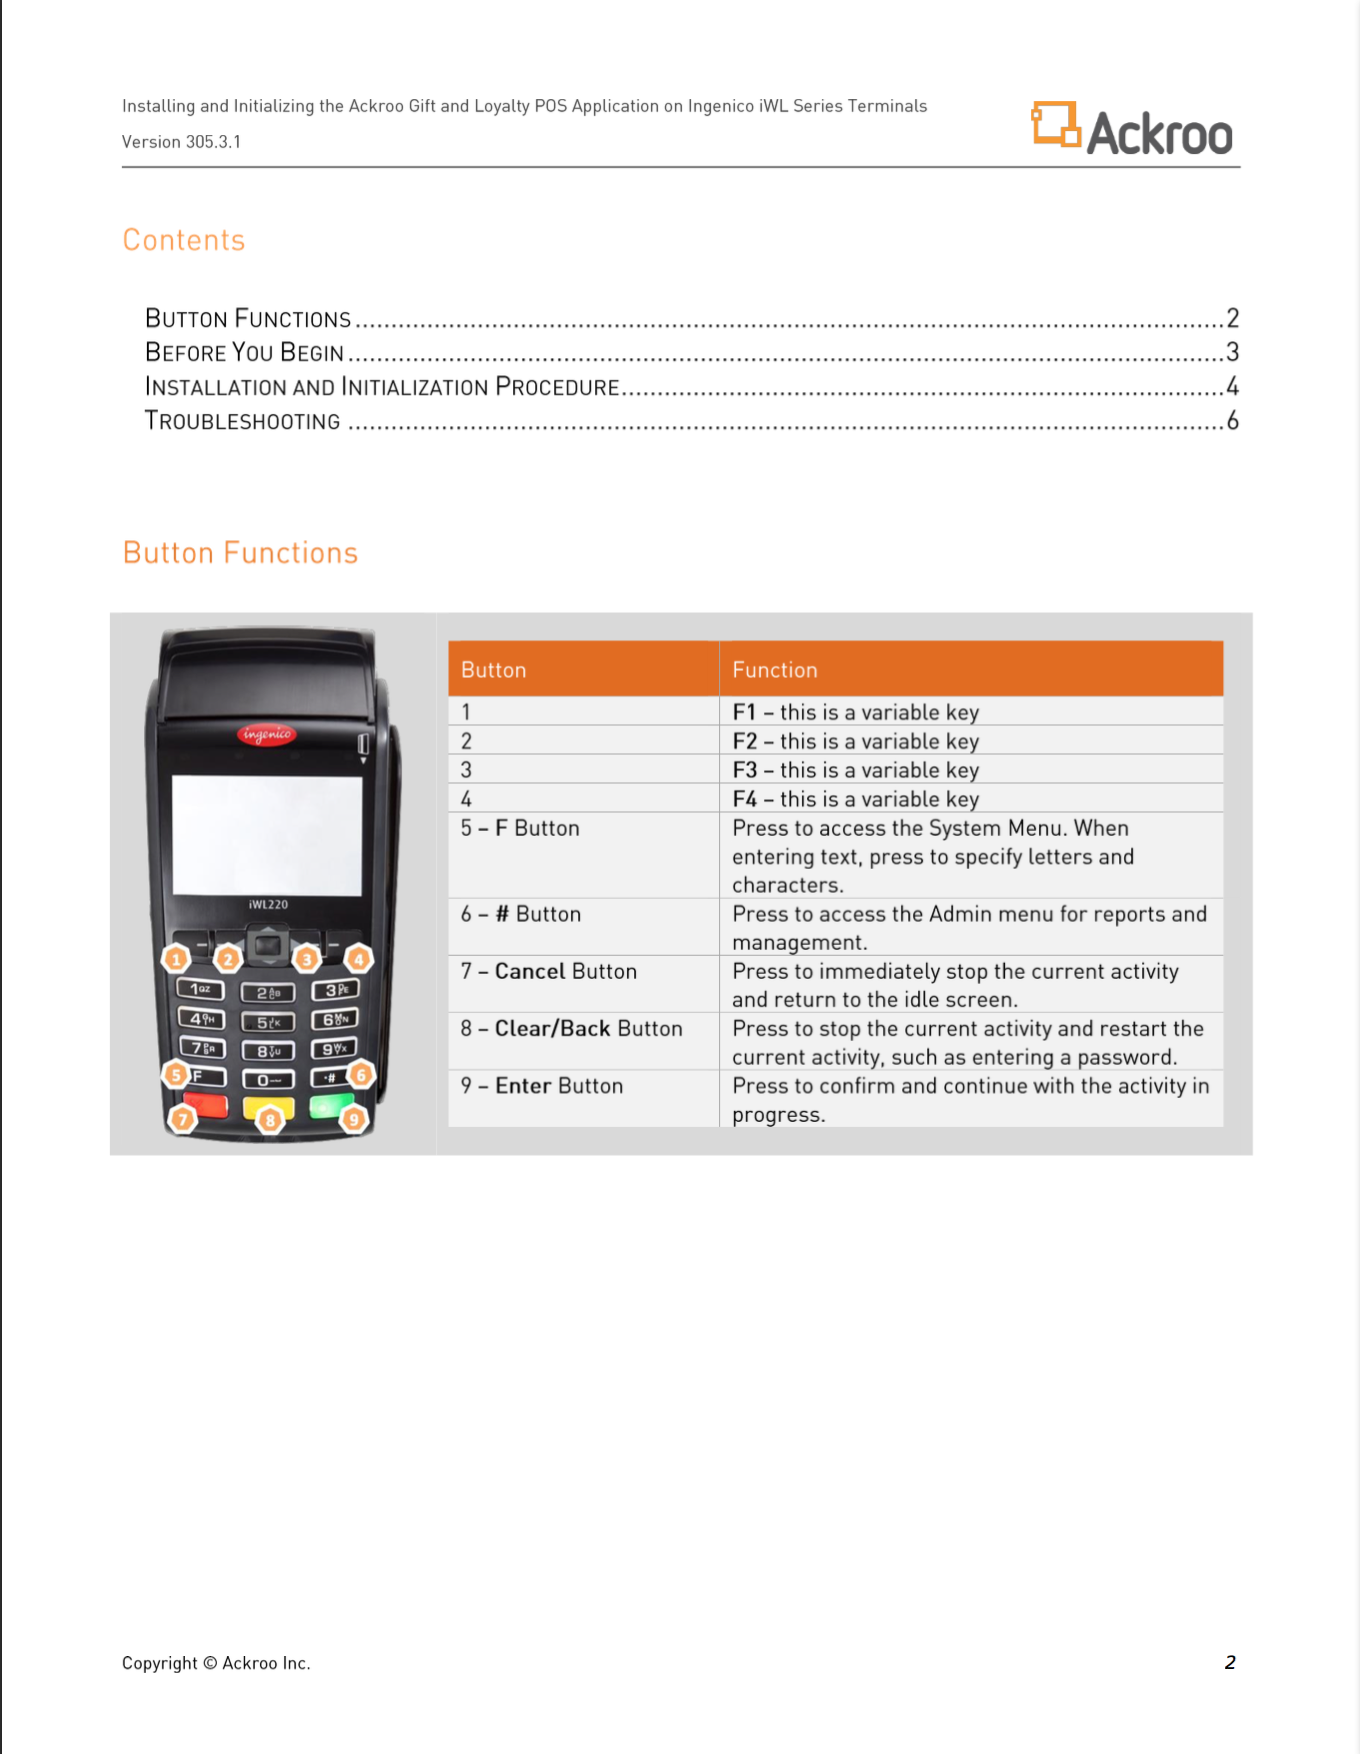 Ingenico_iWL_Ackapp_installation_guide_-_Page_2.png